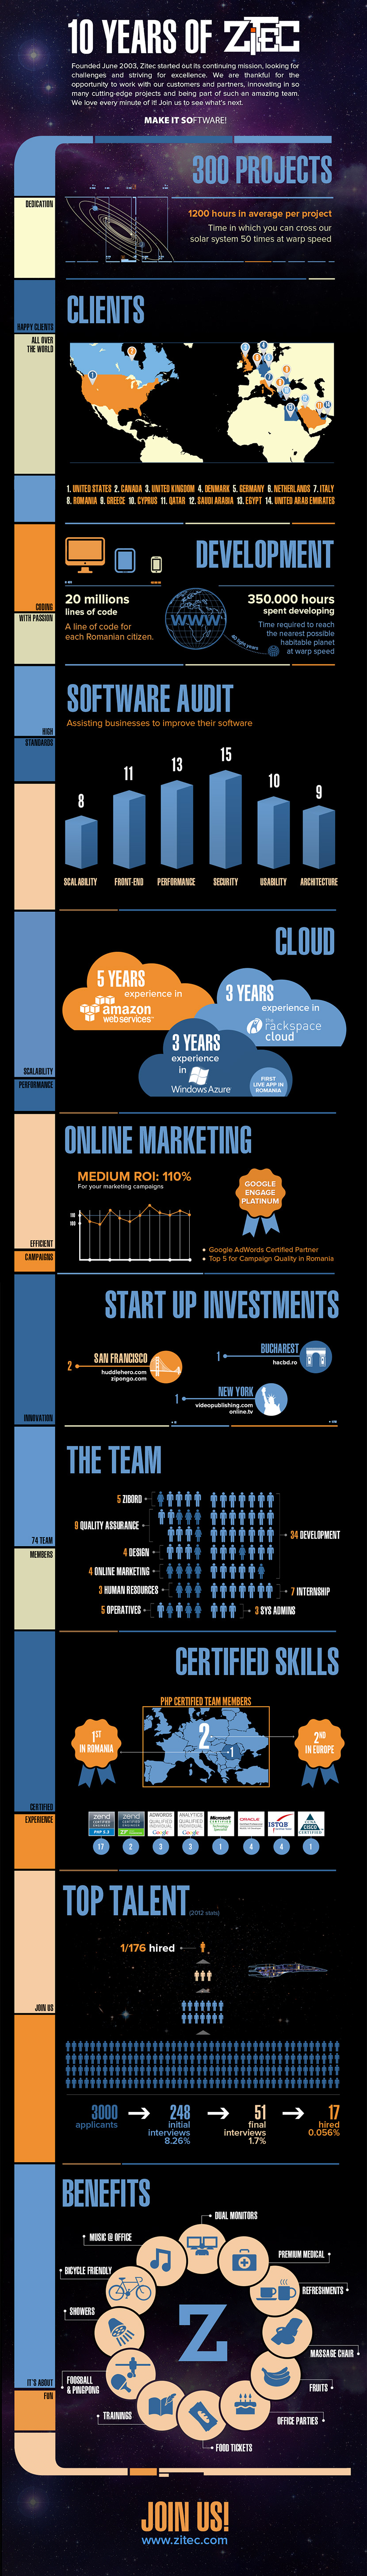 Infographic Zitec 10 Years